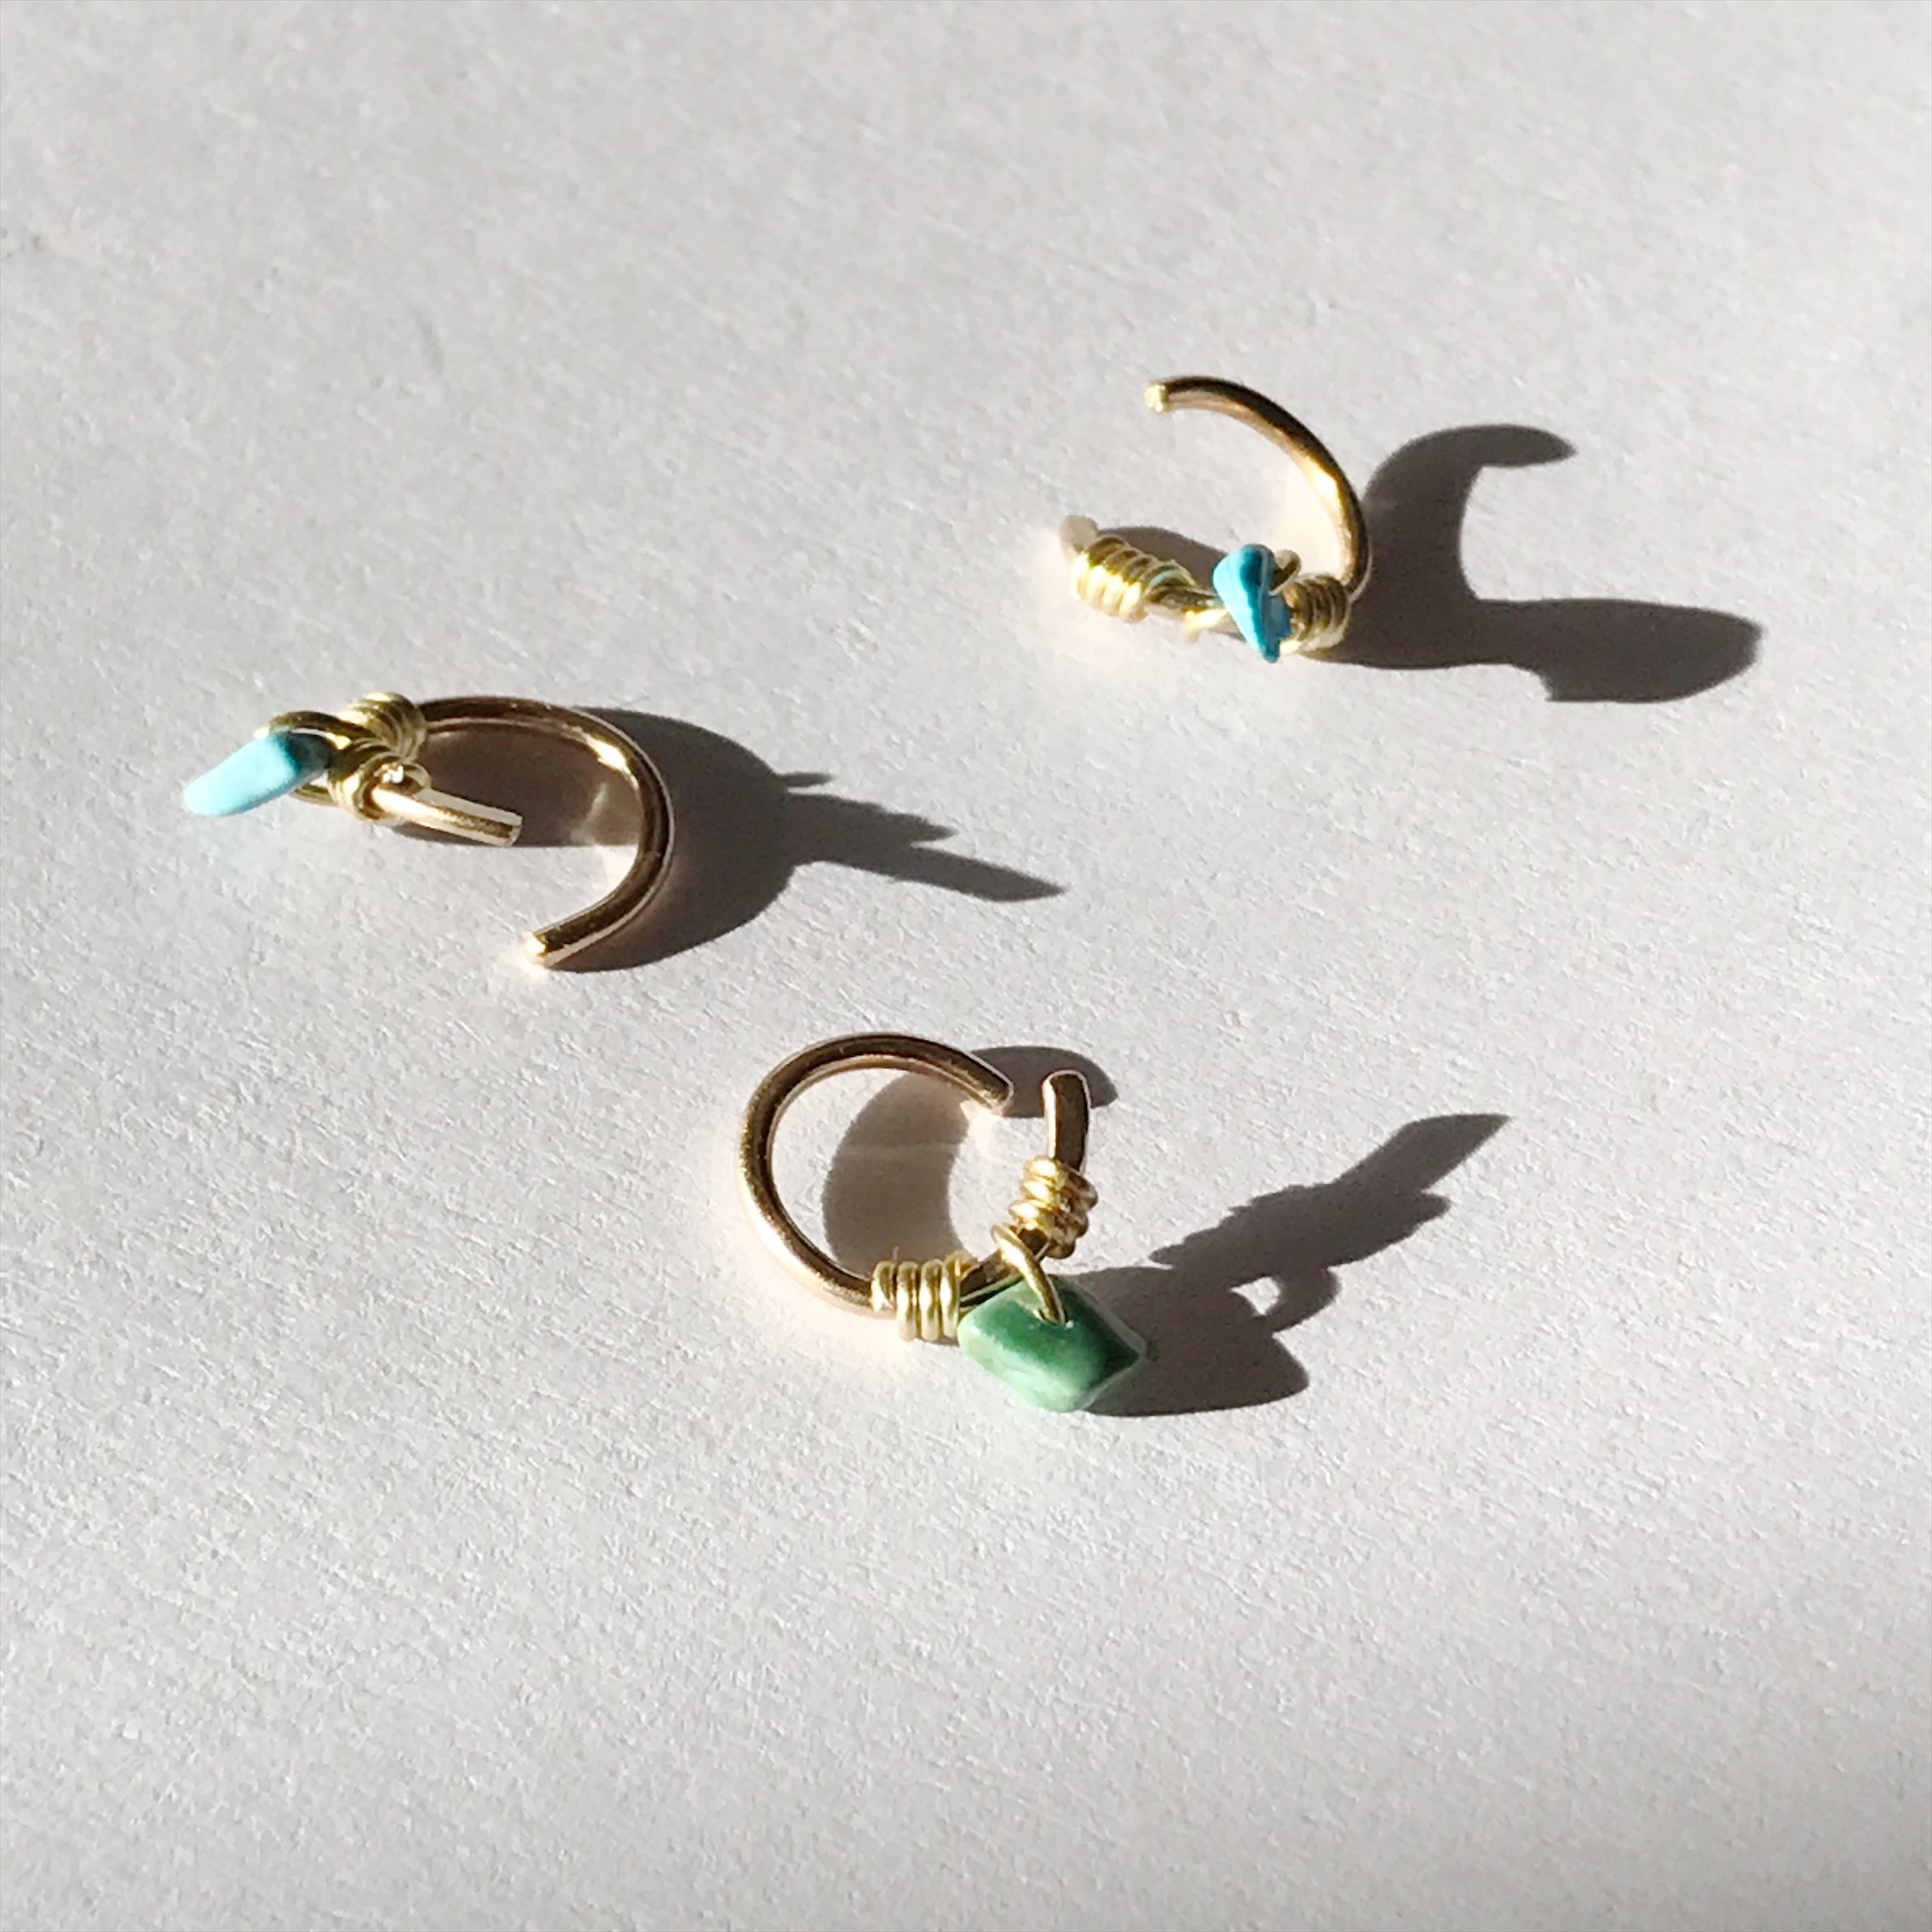 Turquoise cartilage hoops available in 8mm and 10mm diameters. 14K Gold fill. 20ga and 18ga.